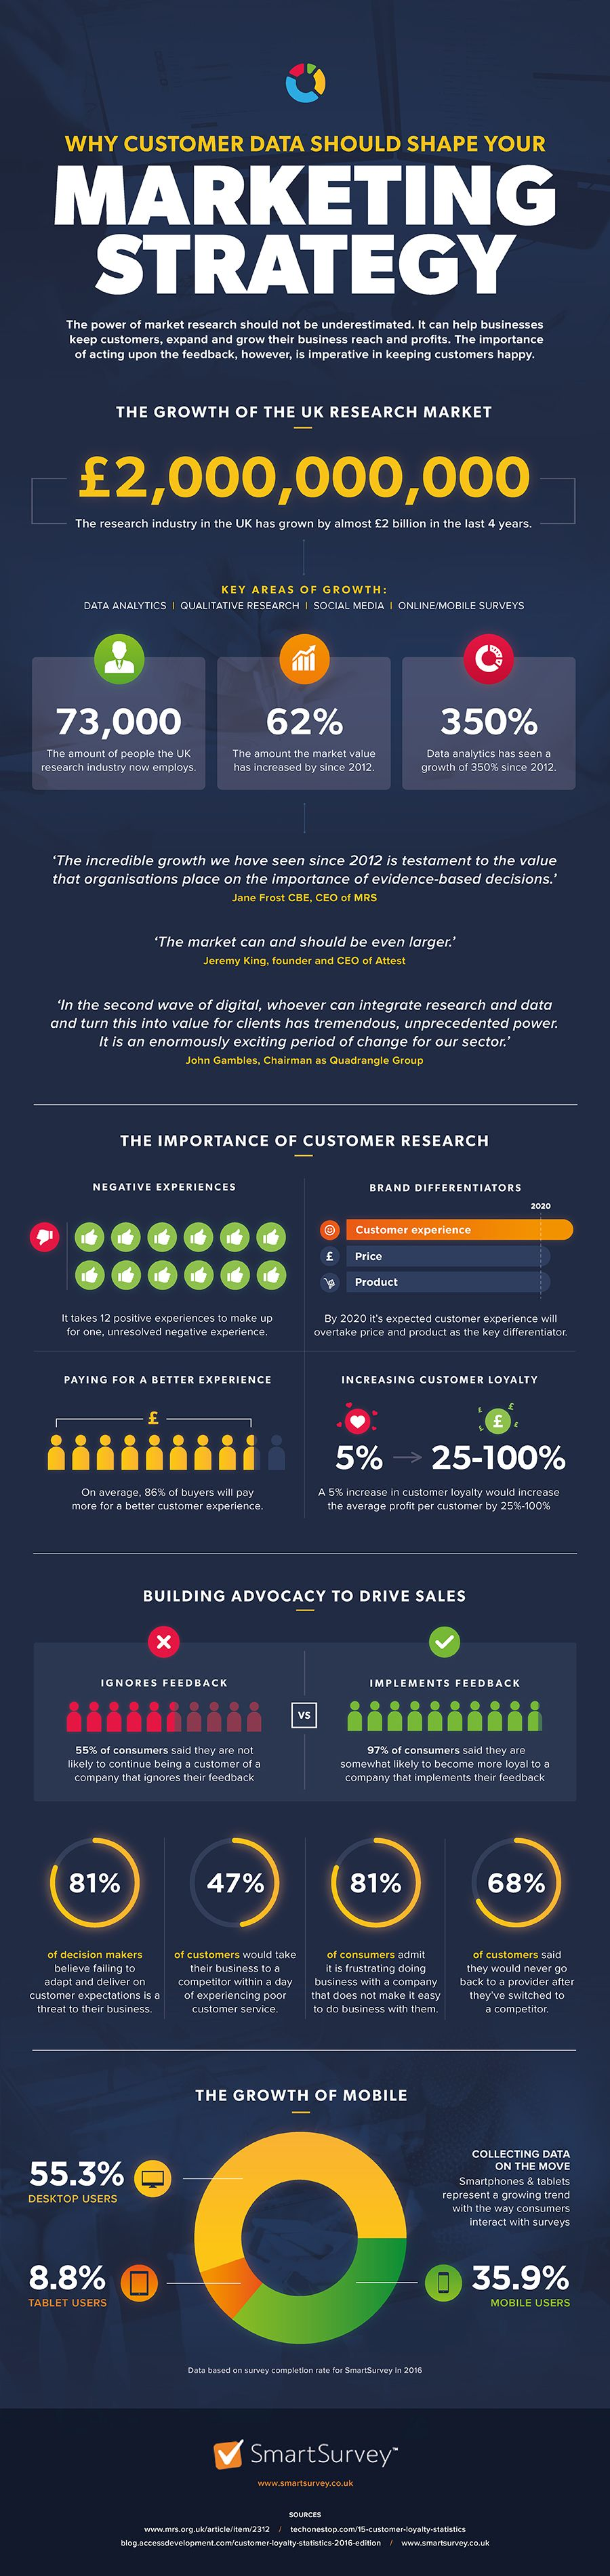 Why Customer Data Should Shape Your Marketing Strategy #Infographic